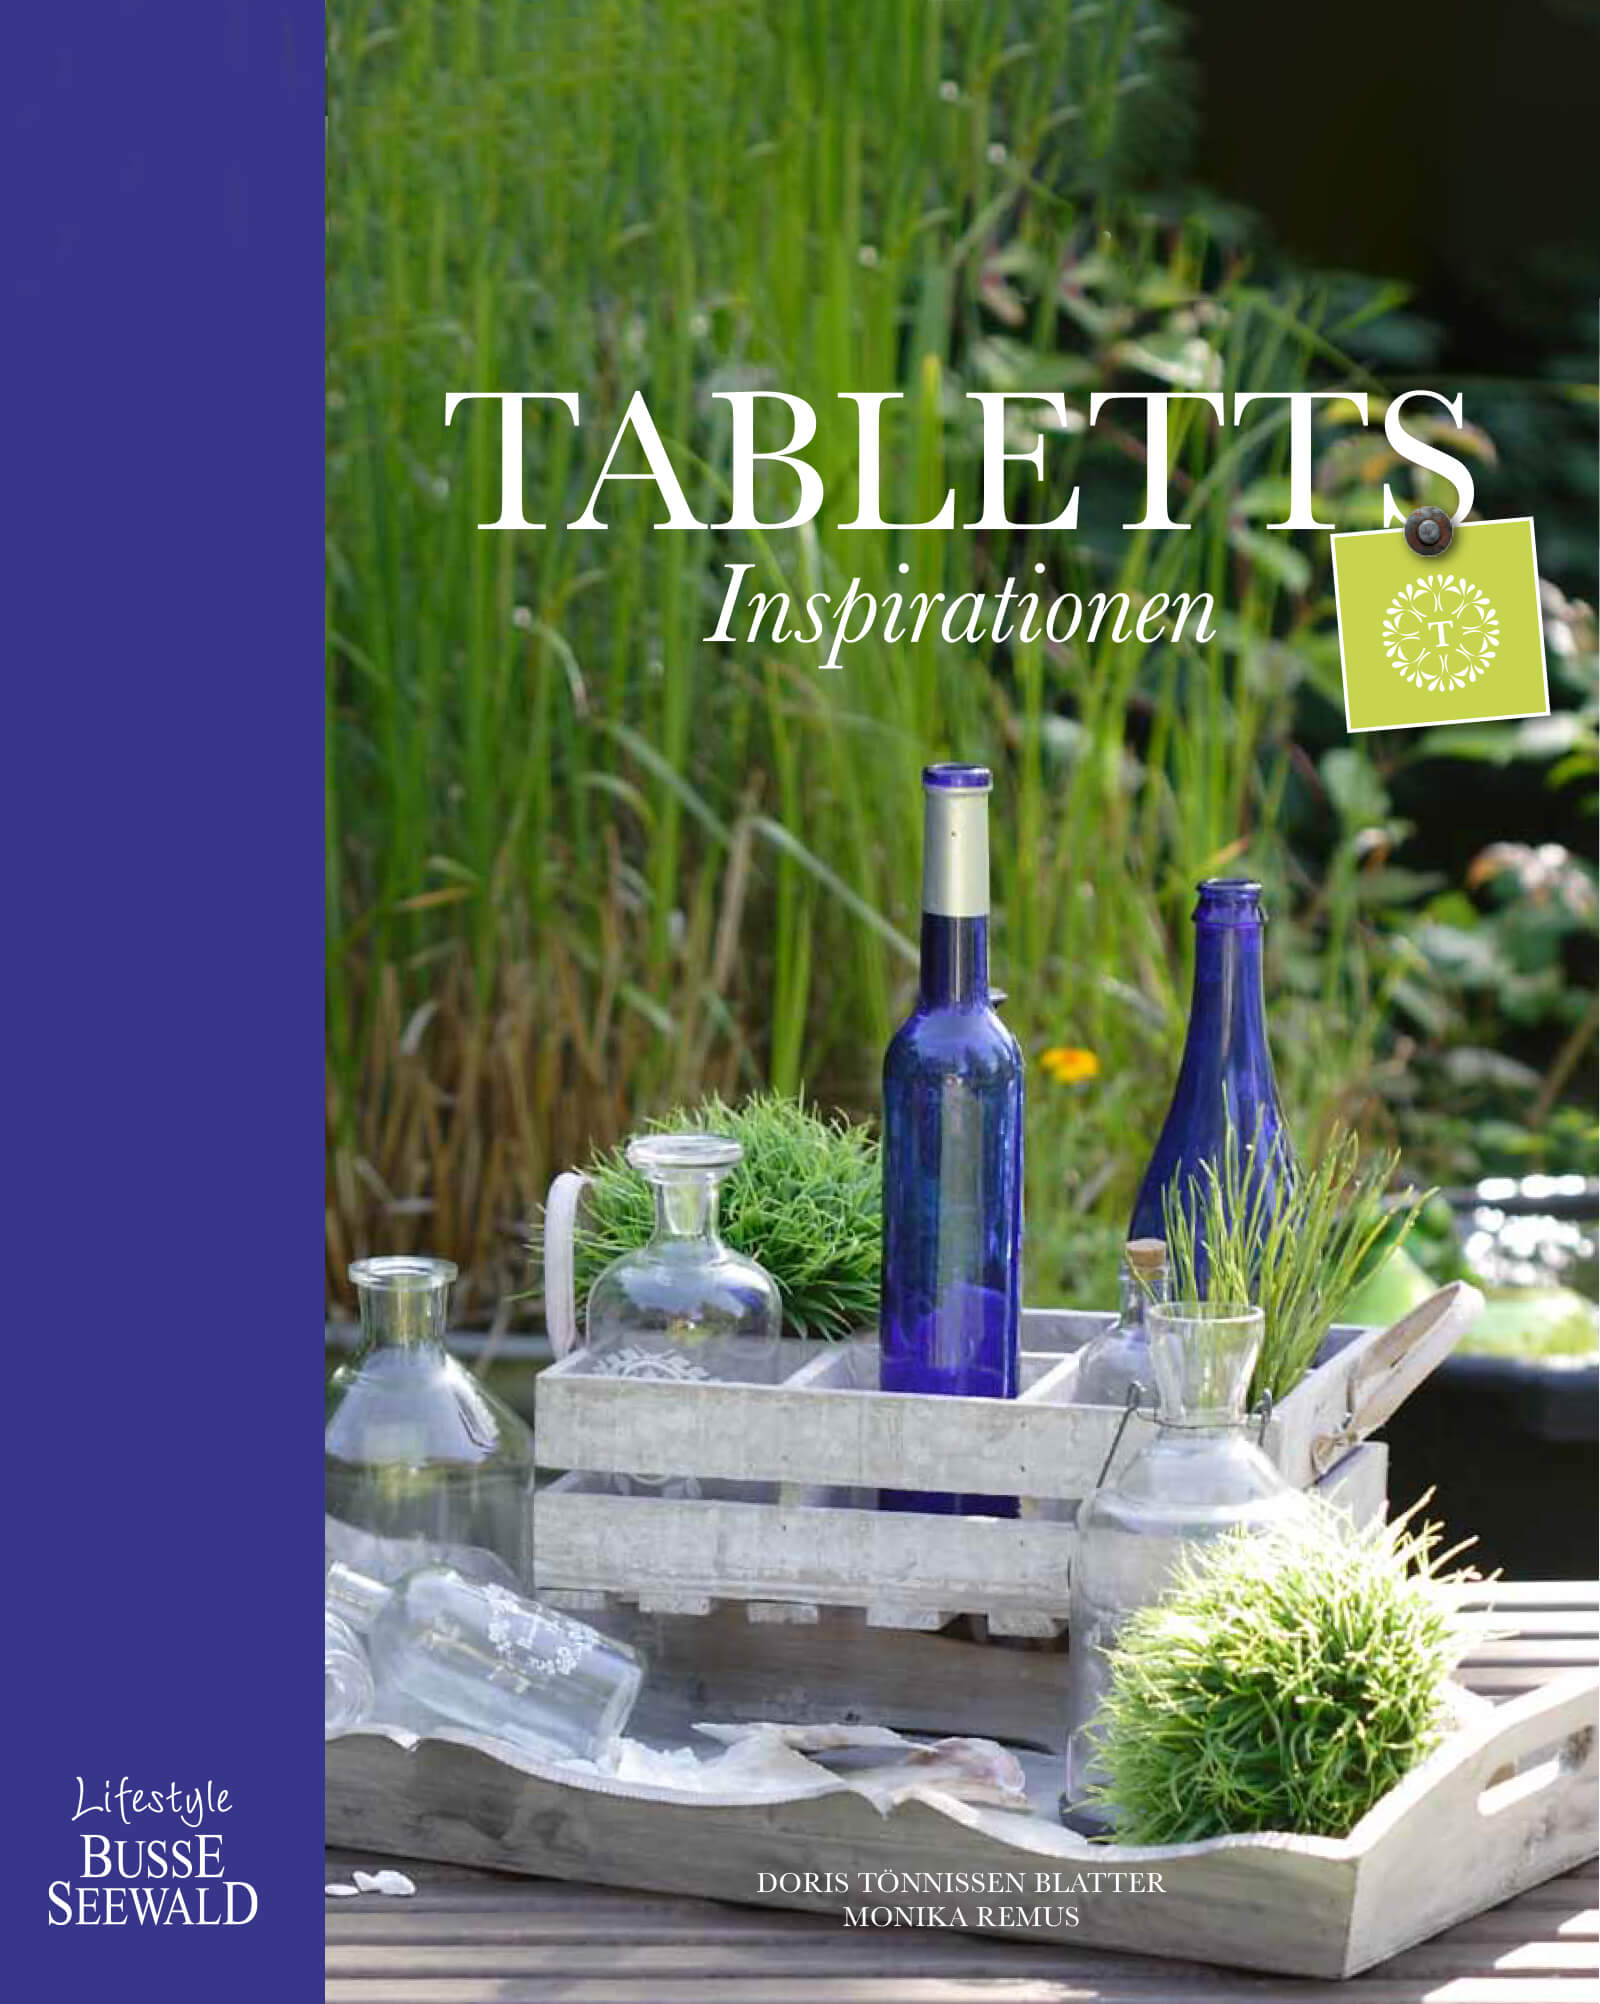 Book - tabletts